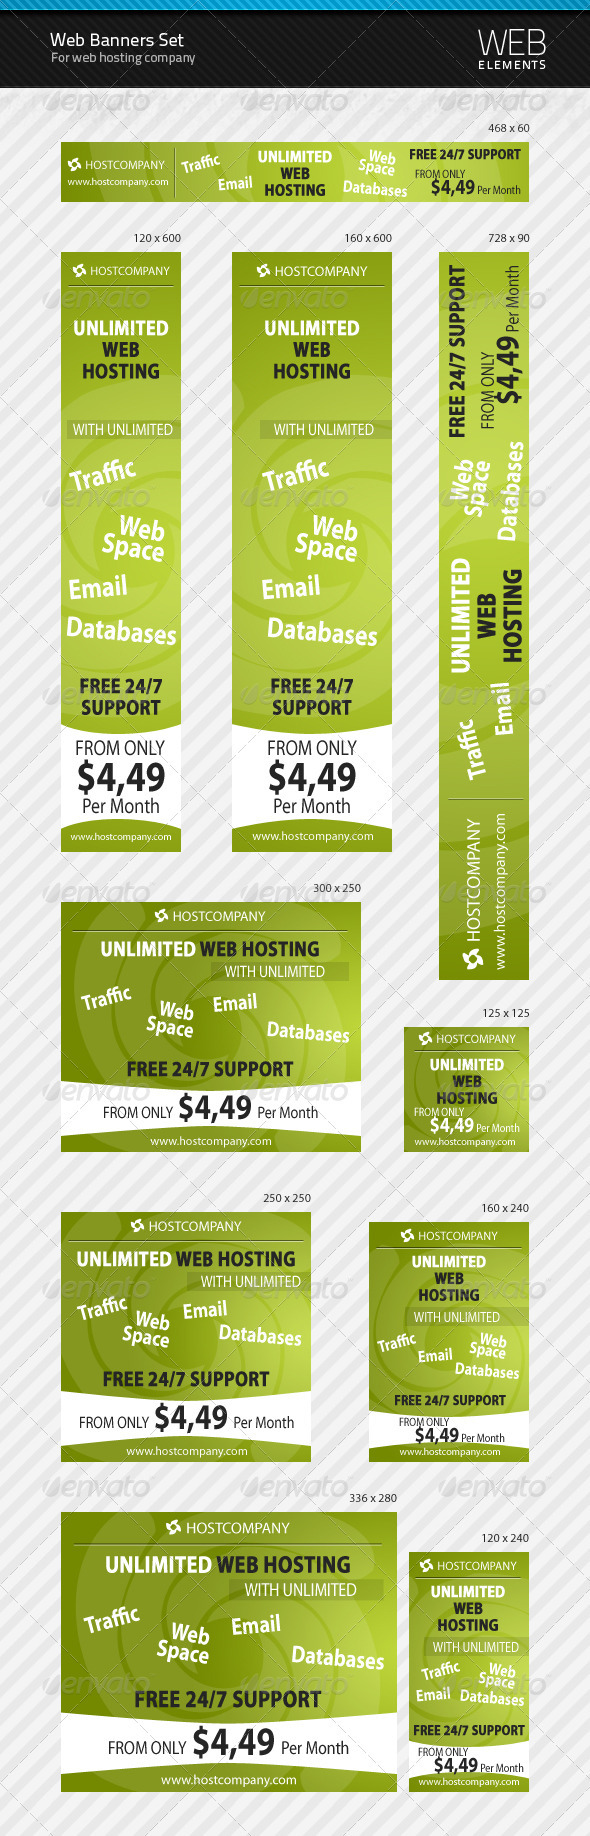 Web Banners Set for Web Hosting Company - Web Elements